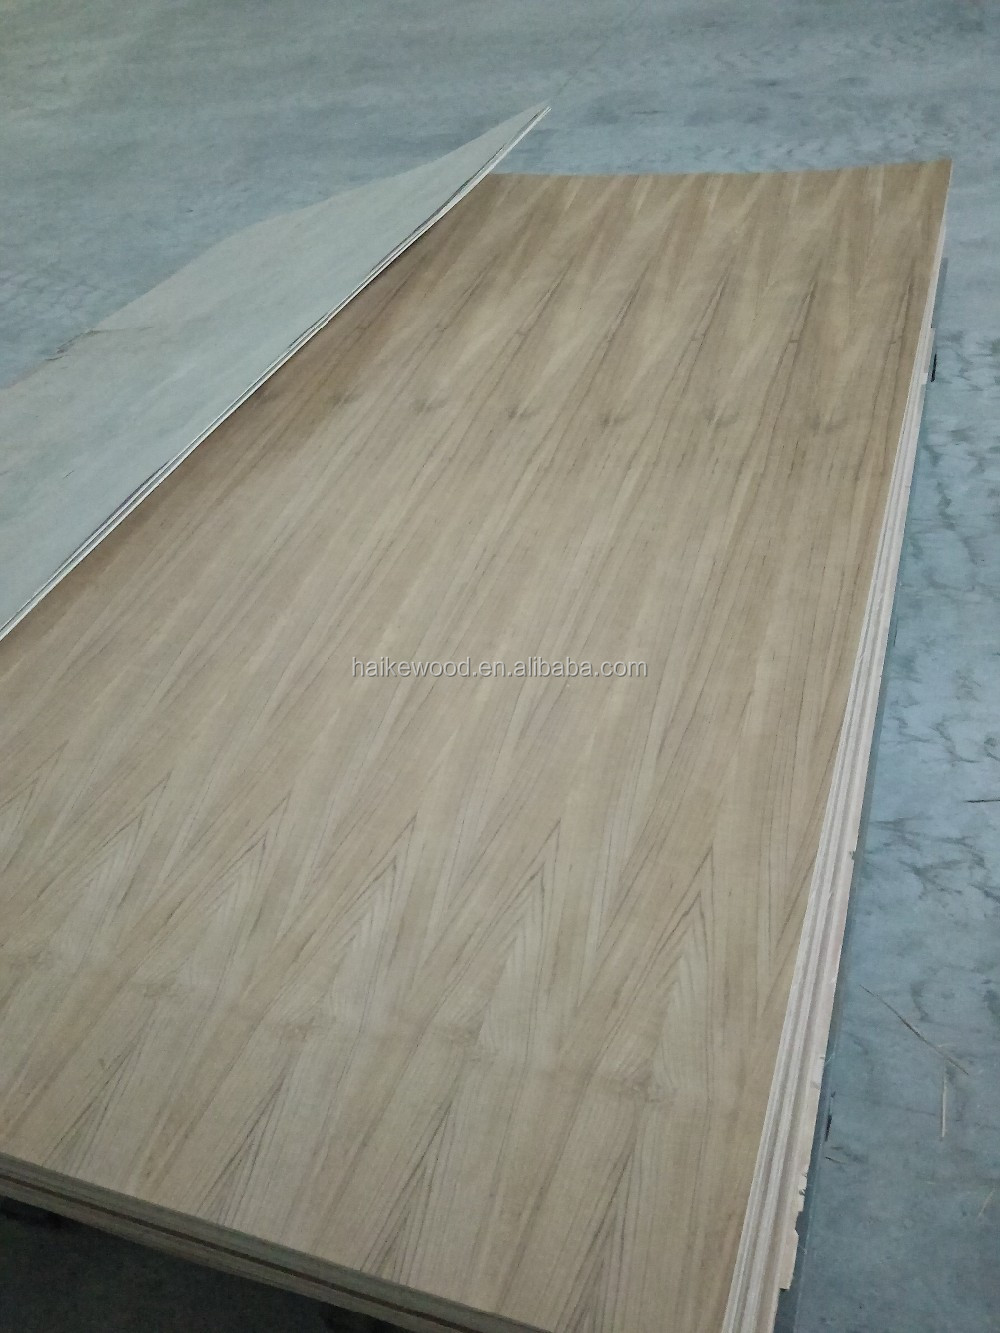 Mm natural walnut veneer faced plywood buy